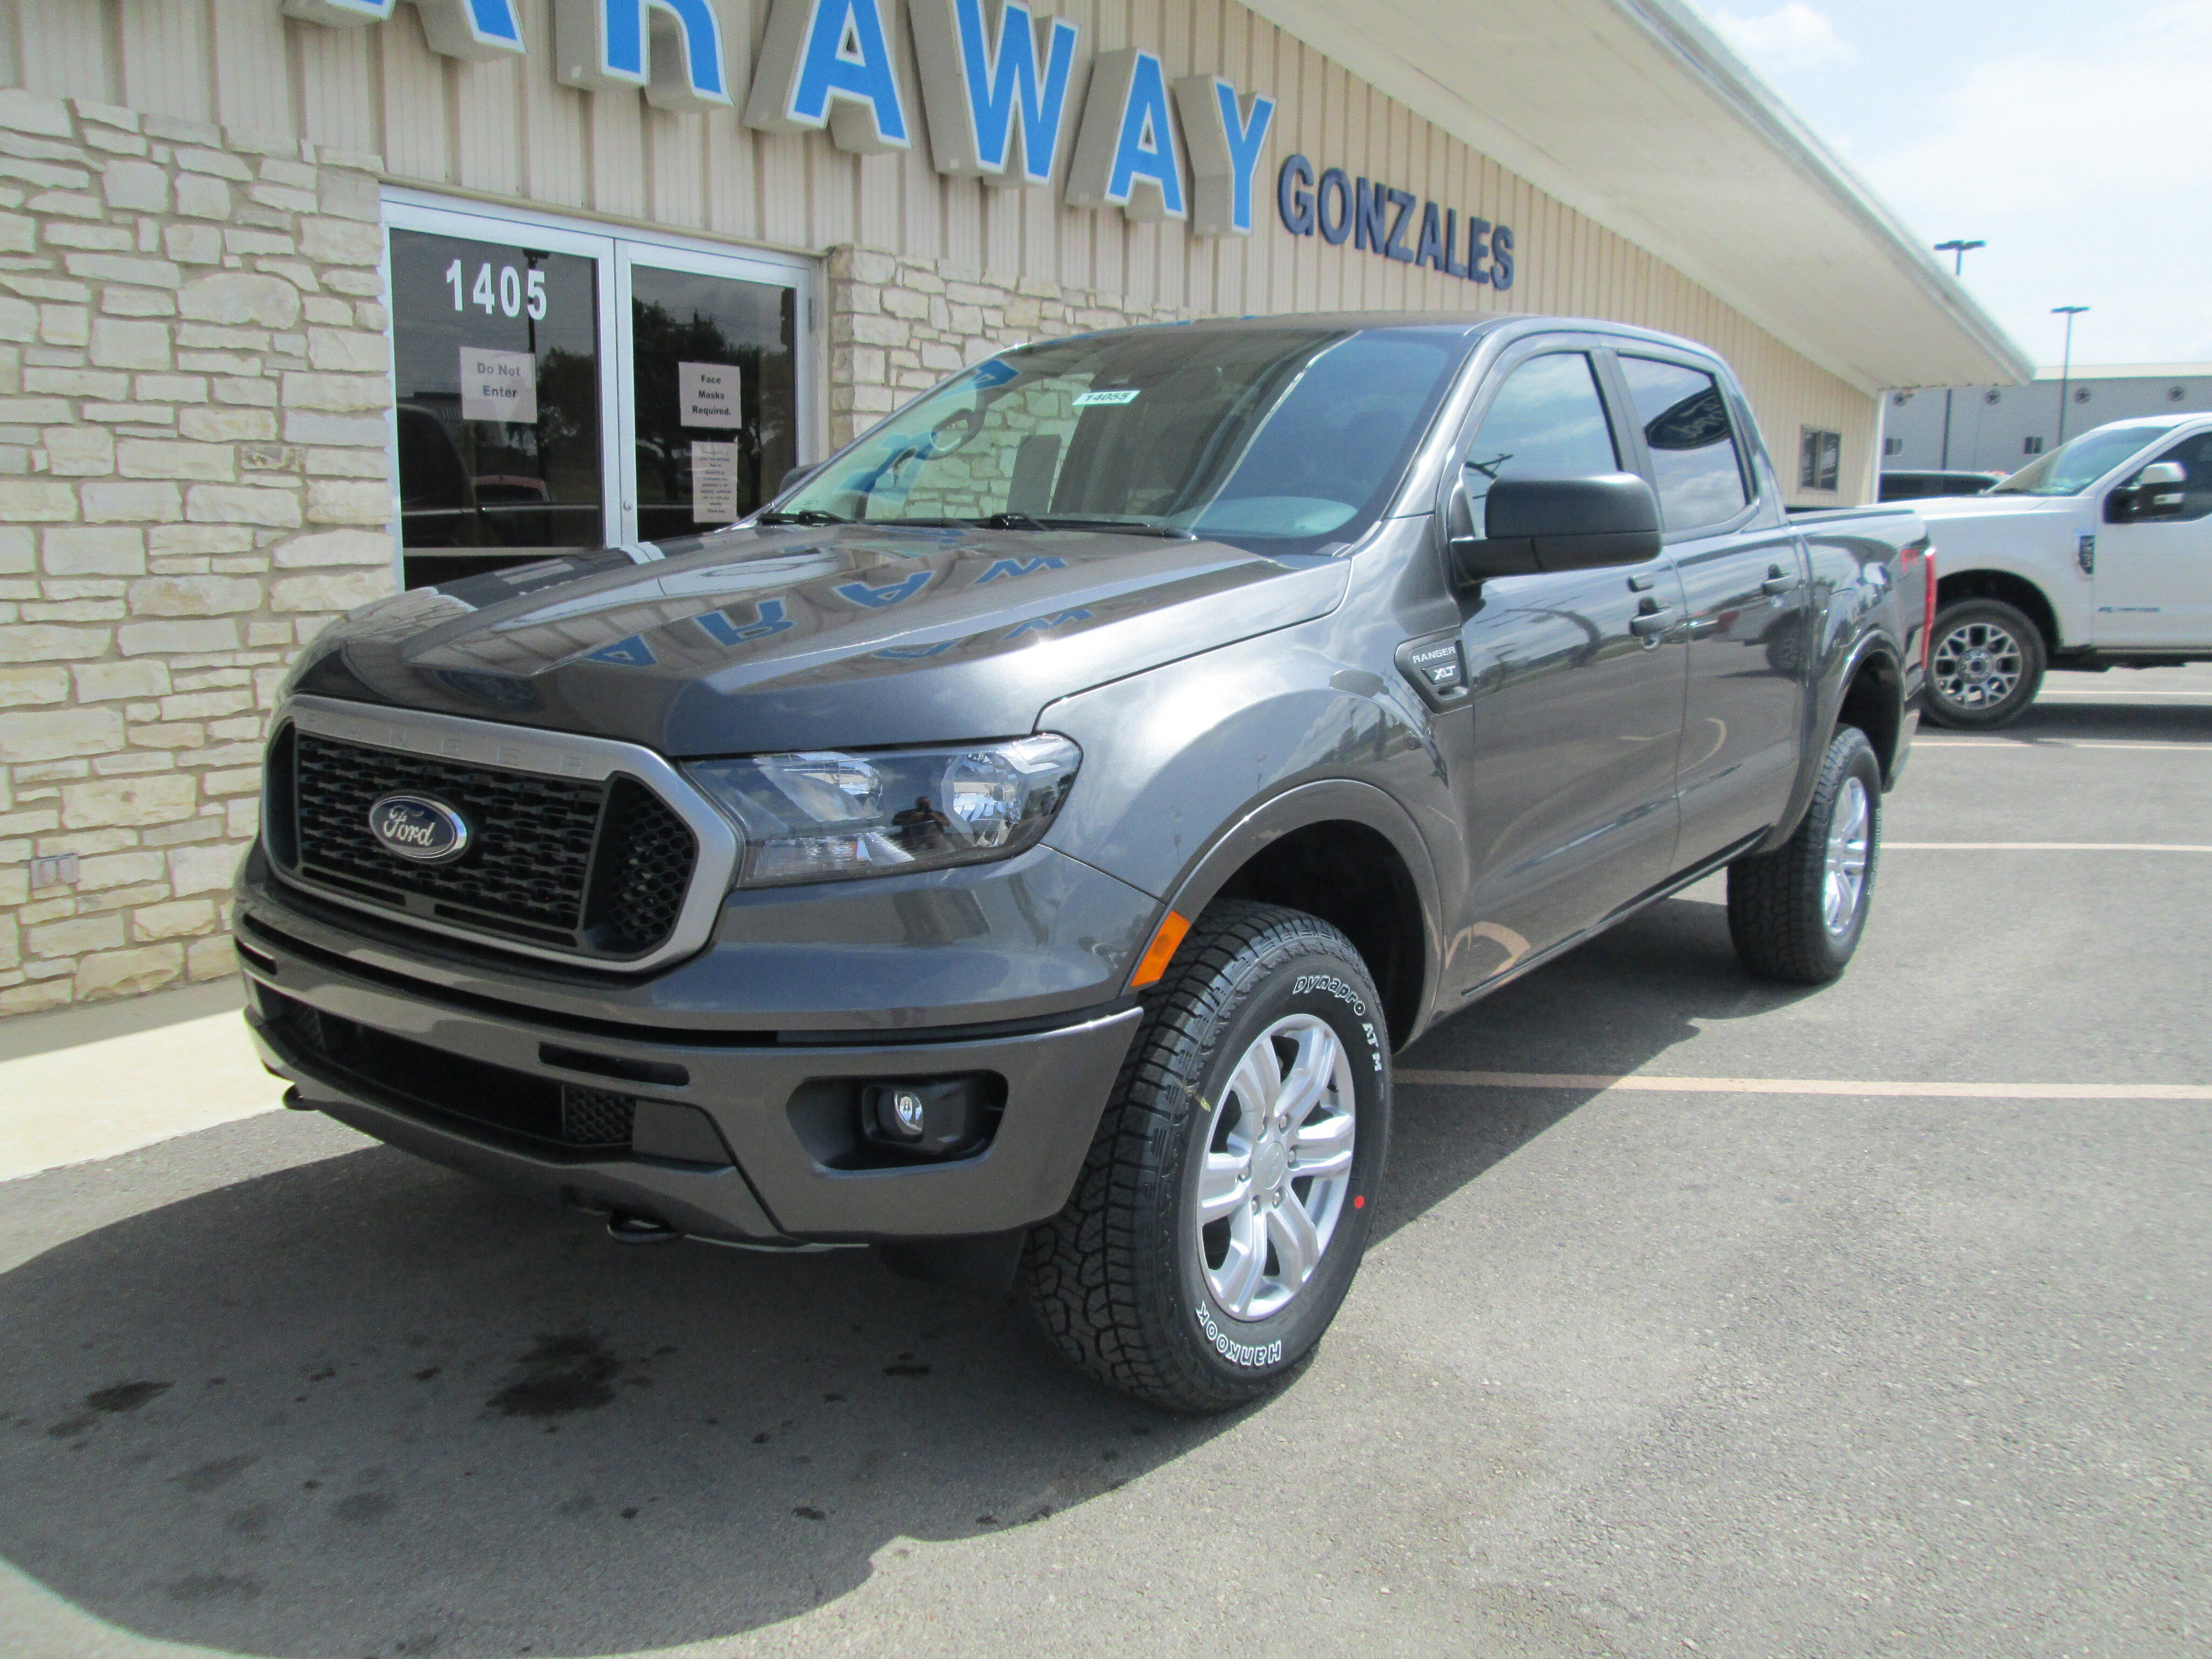 caraway ford gonzales gonzales tx 78629 car dealership and auto financing autotrader caraway ford gonzales gonzales tx